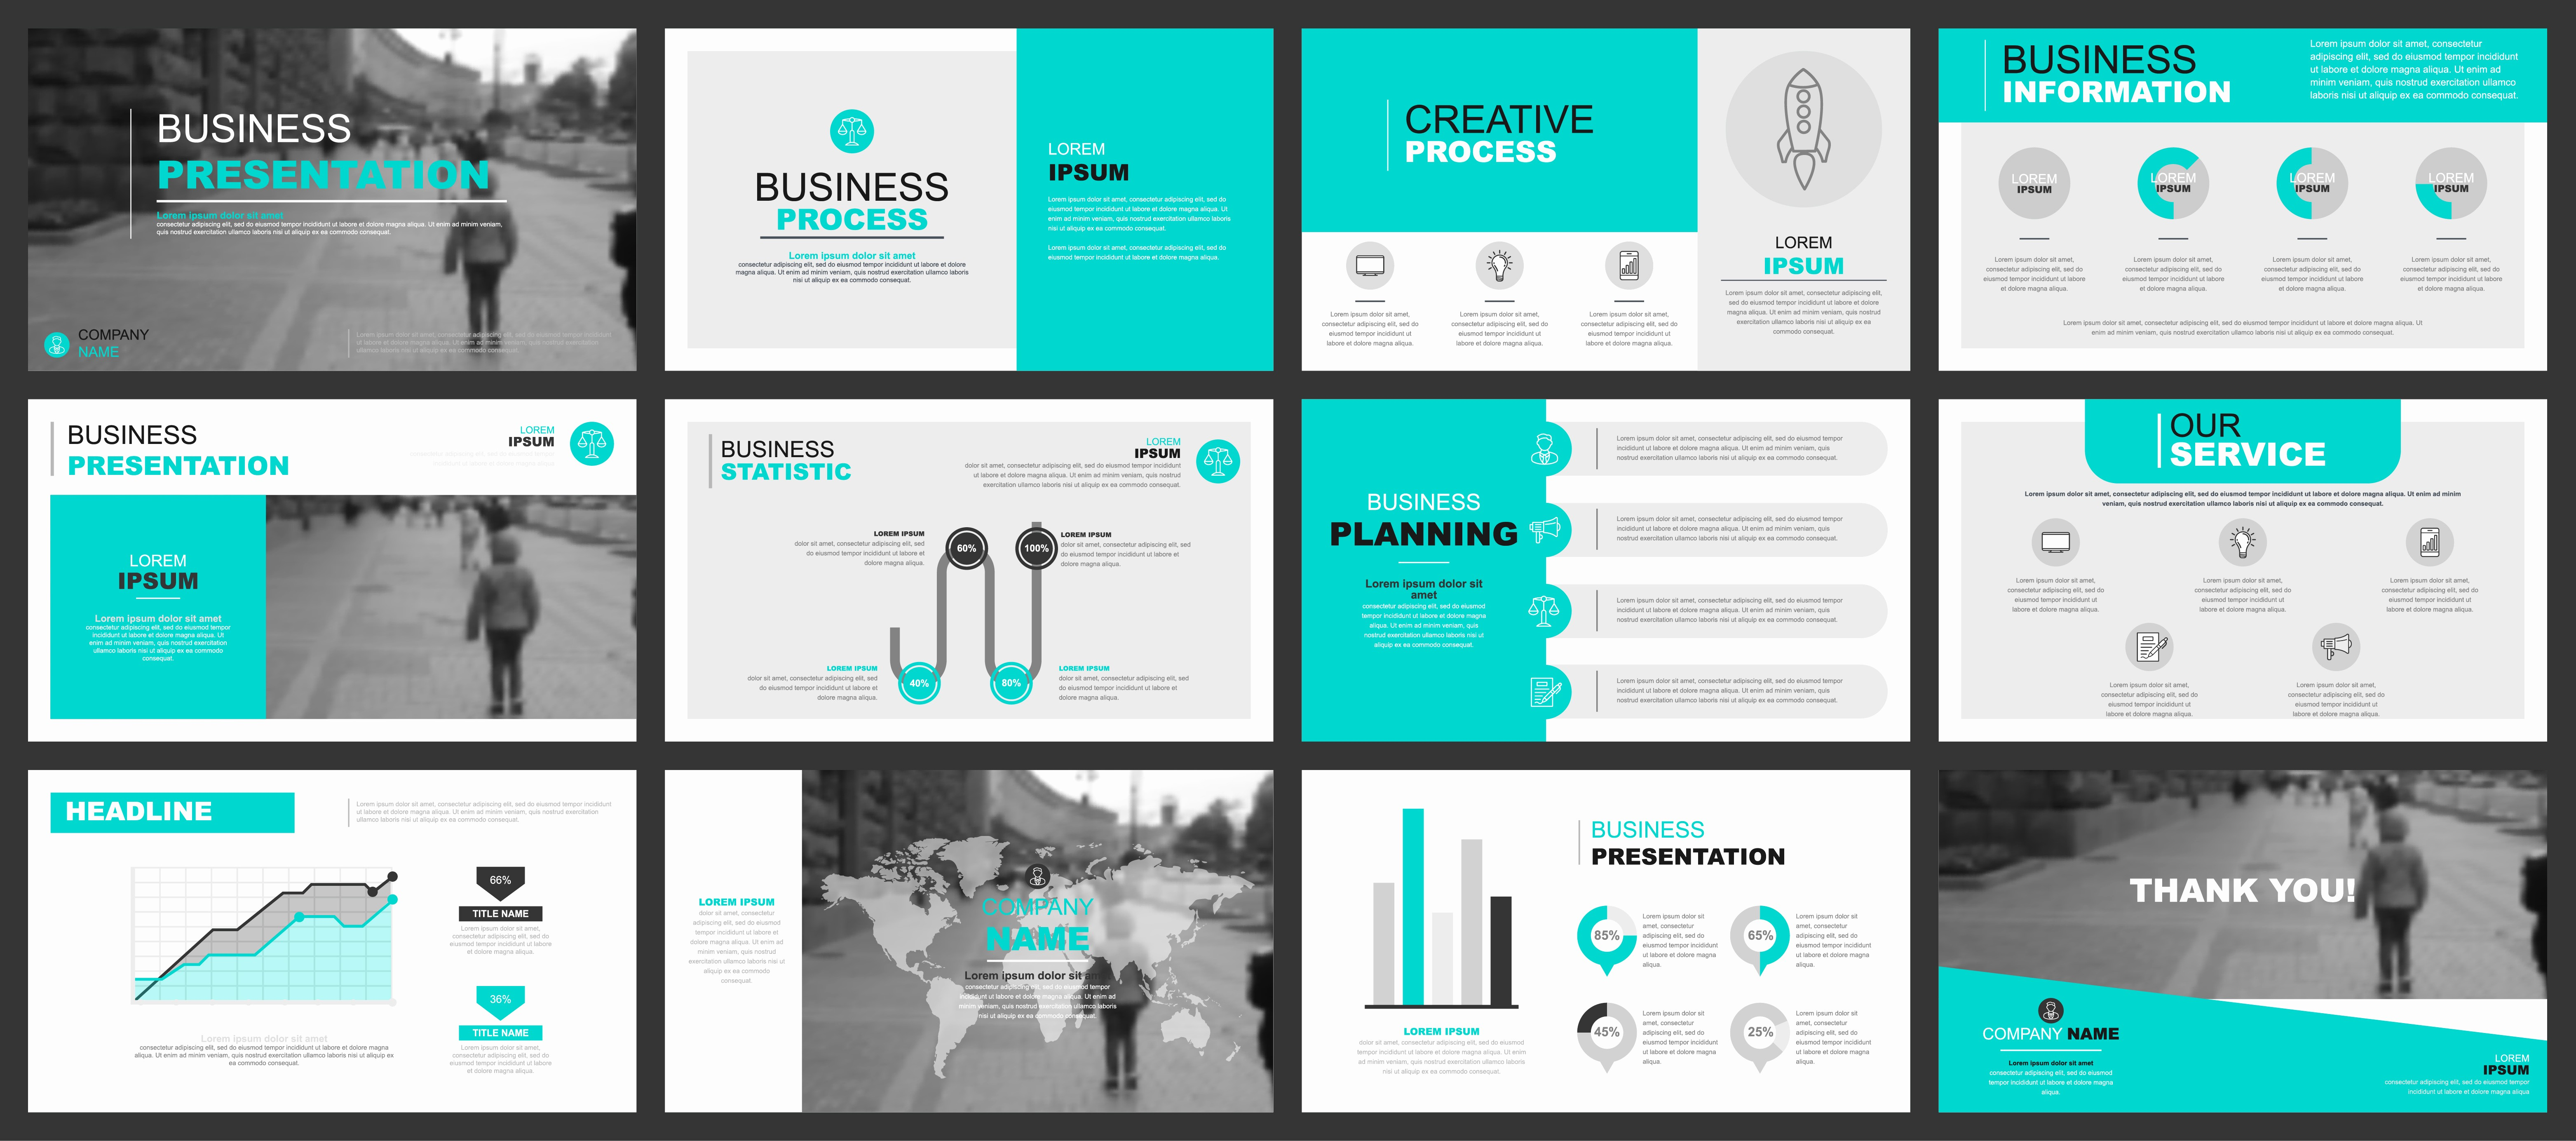 Ppt Template for Business Presentation Inspirational Business Powerpoint Presentation with Infographics